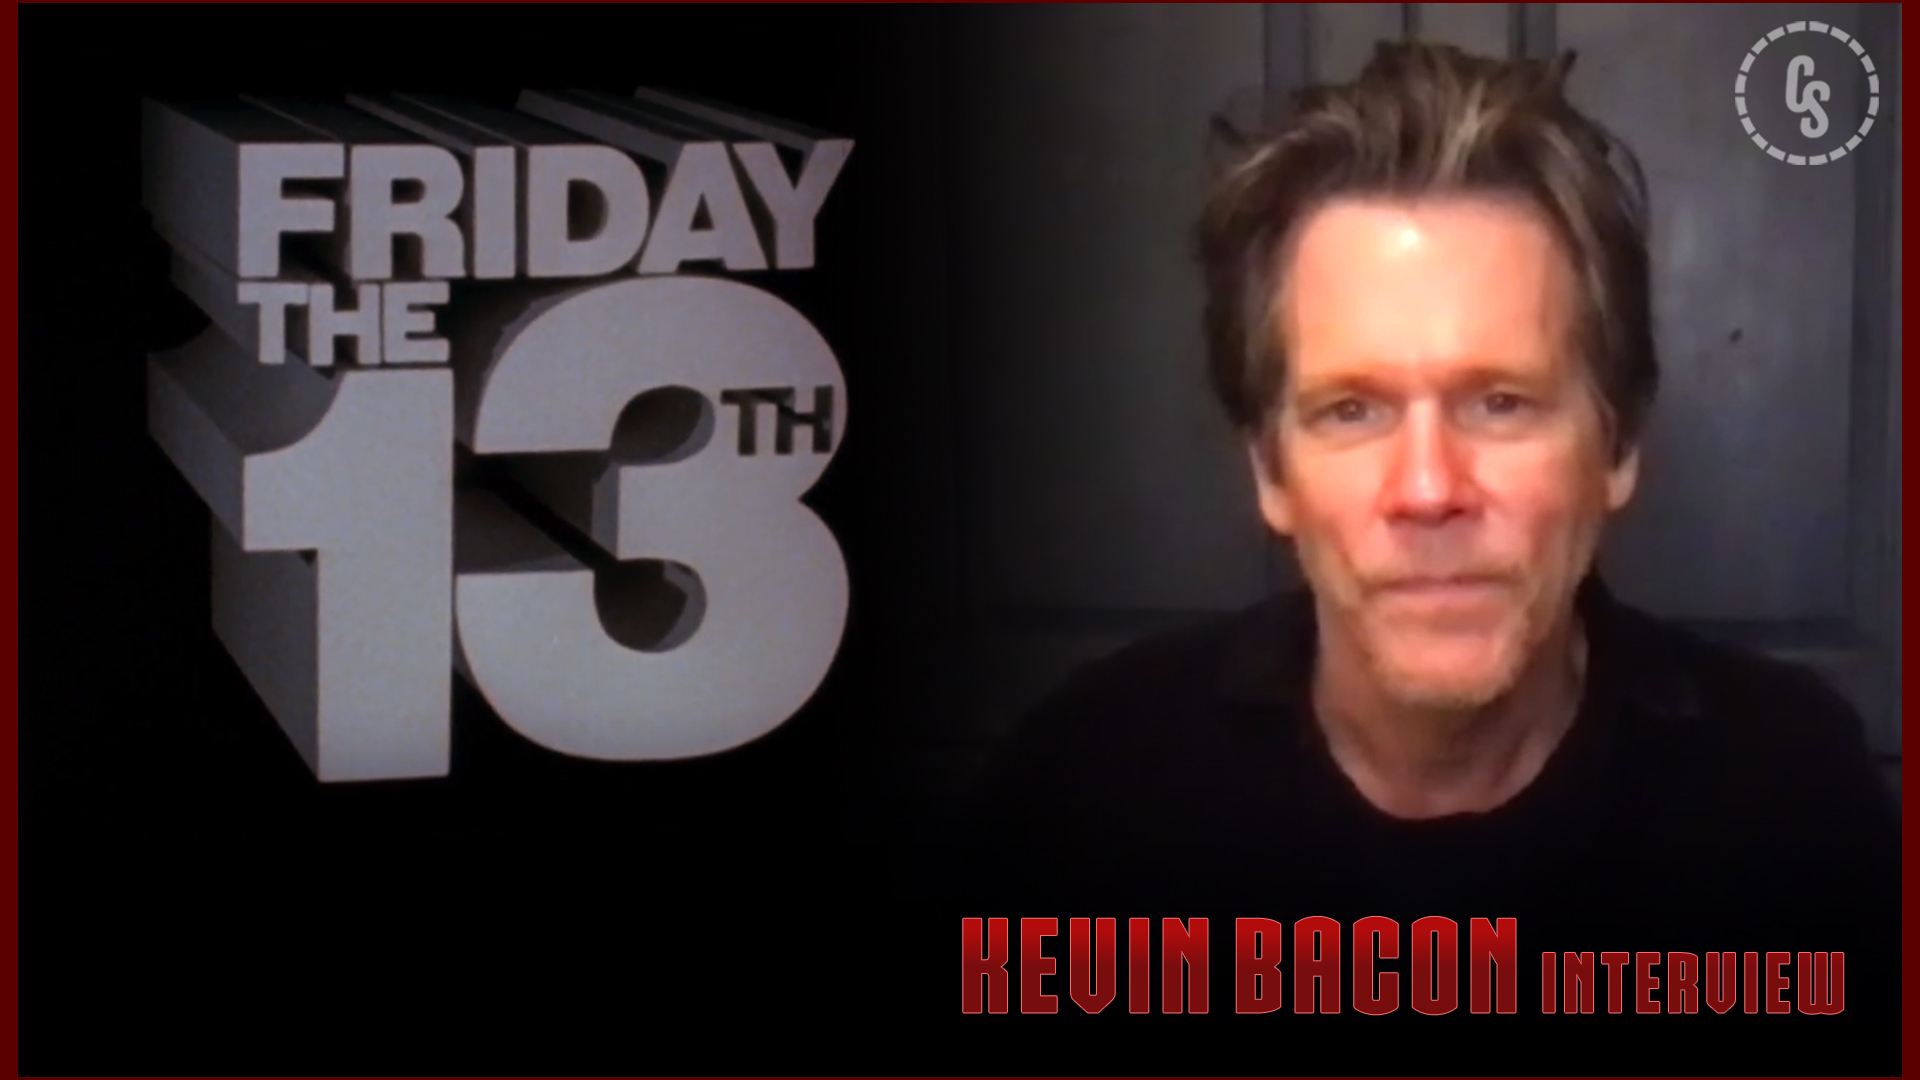 Exclusive: Kevin Bacon Reflects on Friday the 13th 40th Anniversary